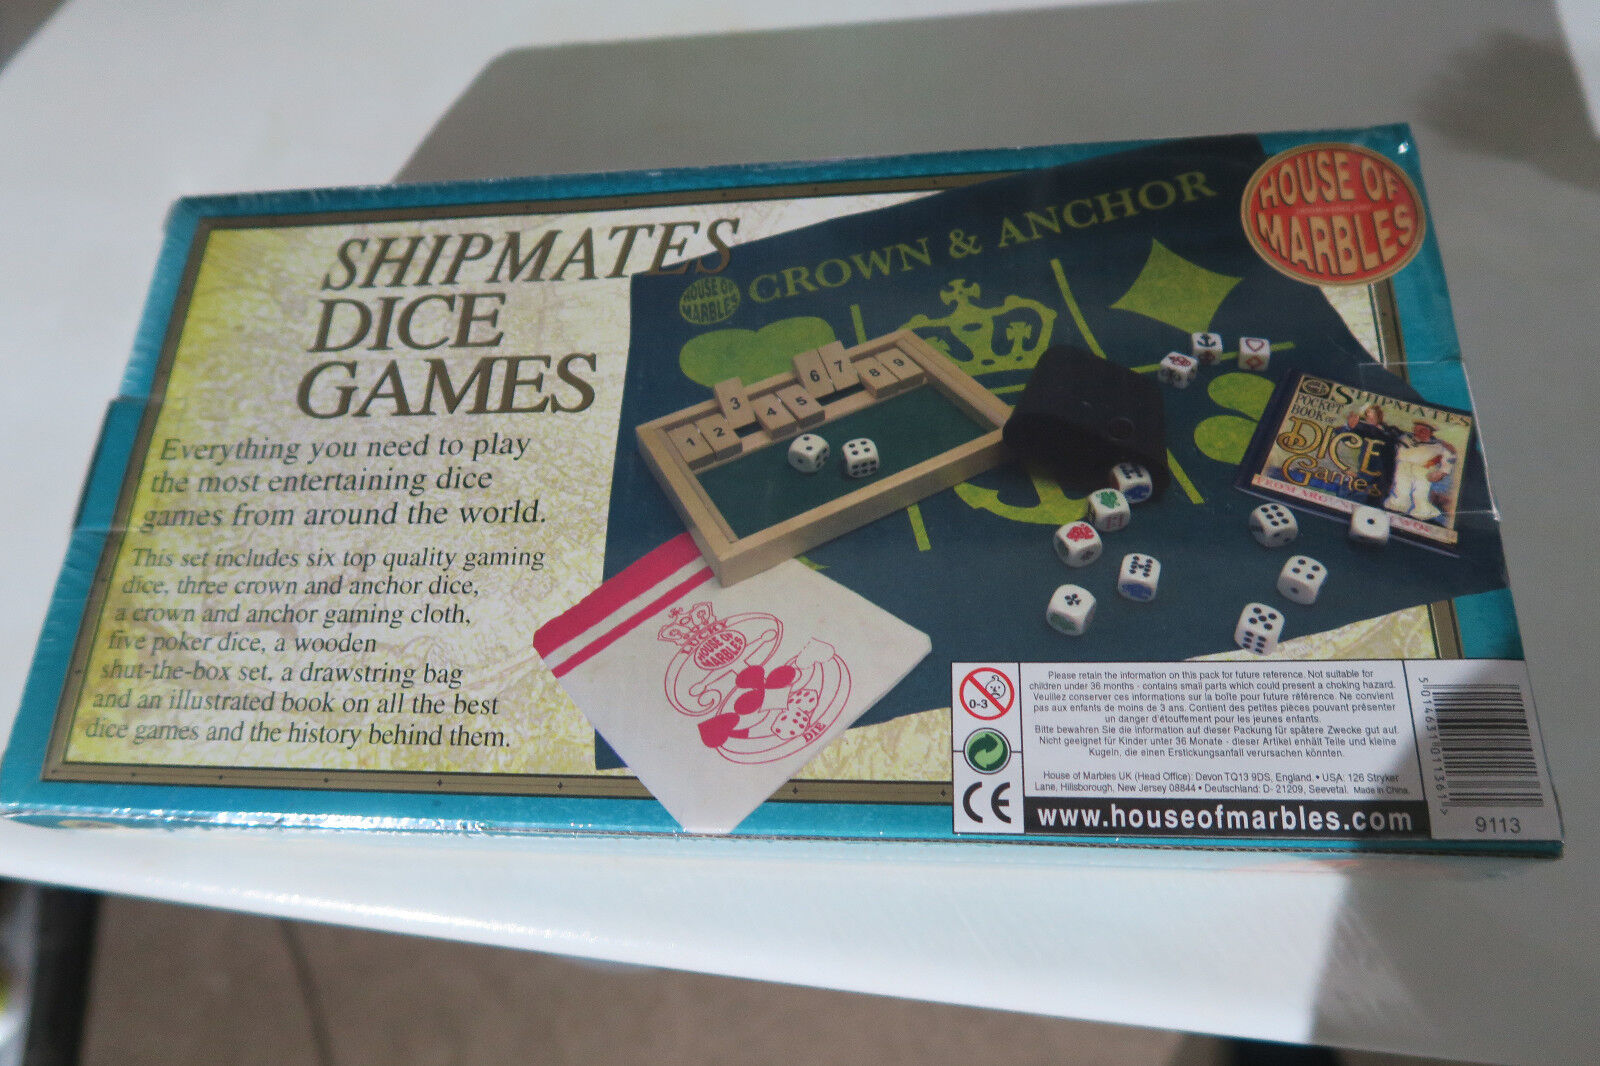 New Shipmates Dice Games Inc 14 Gaming Dice Wooden Shut-the-box Cloth & Bag